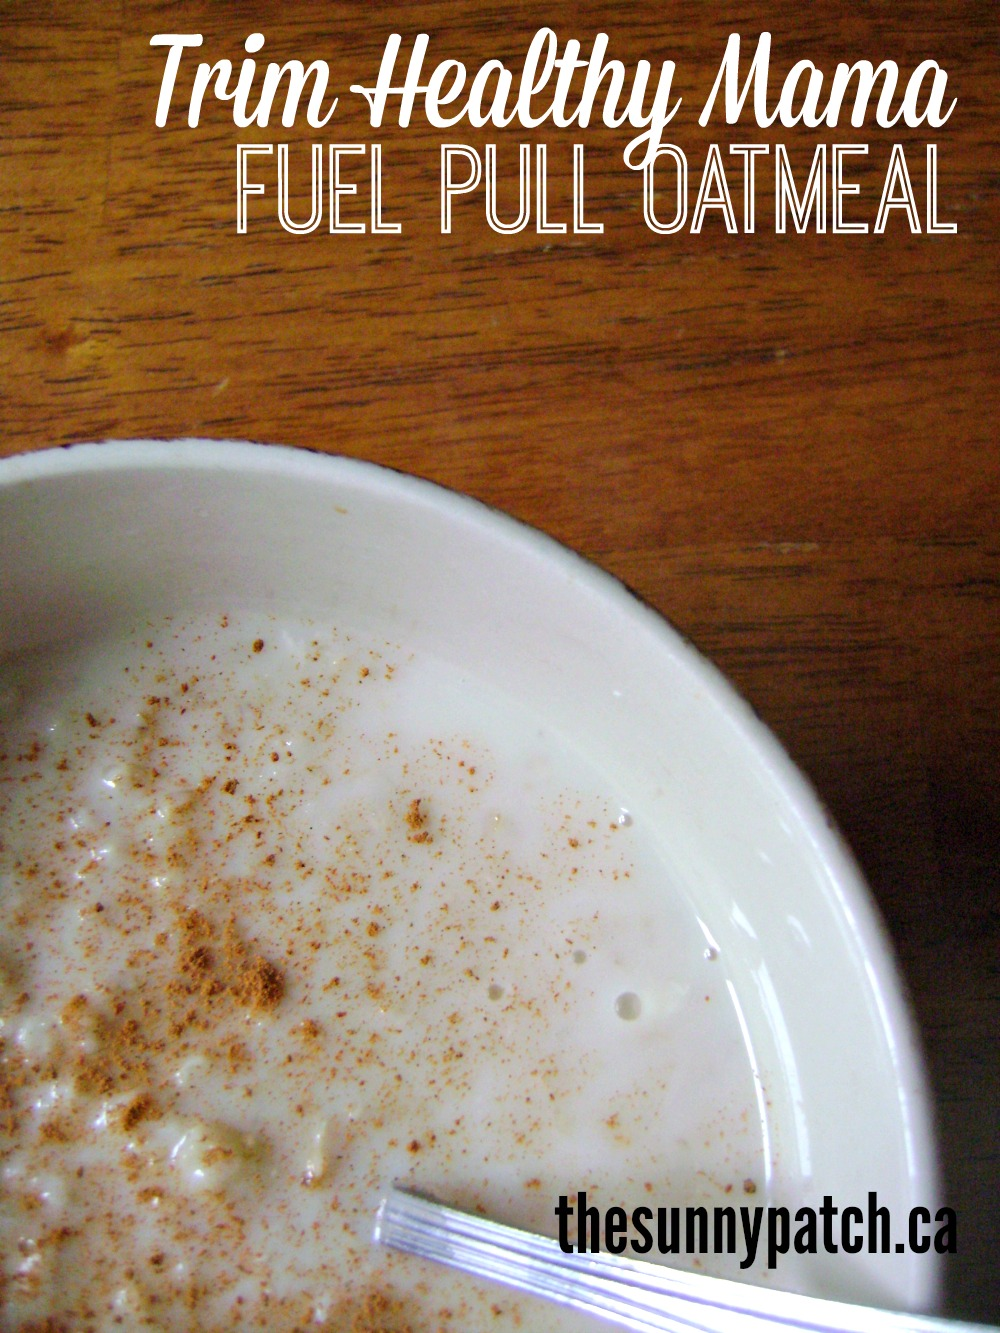 Enjoy your oatmeal even when you're eating a fuel pull meal with Trim Healthy Mama!